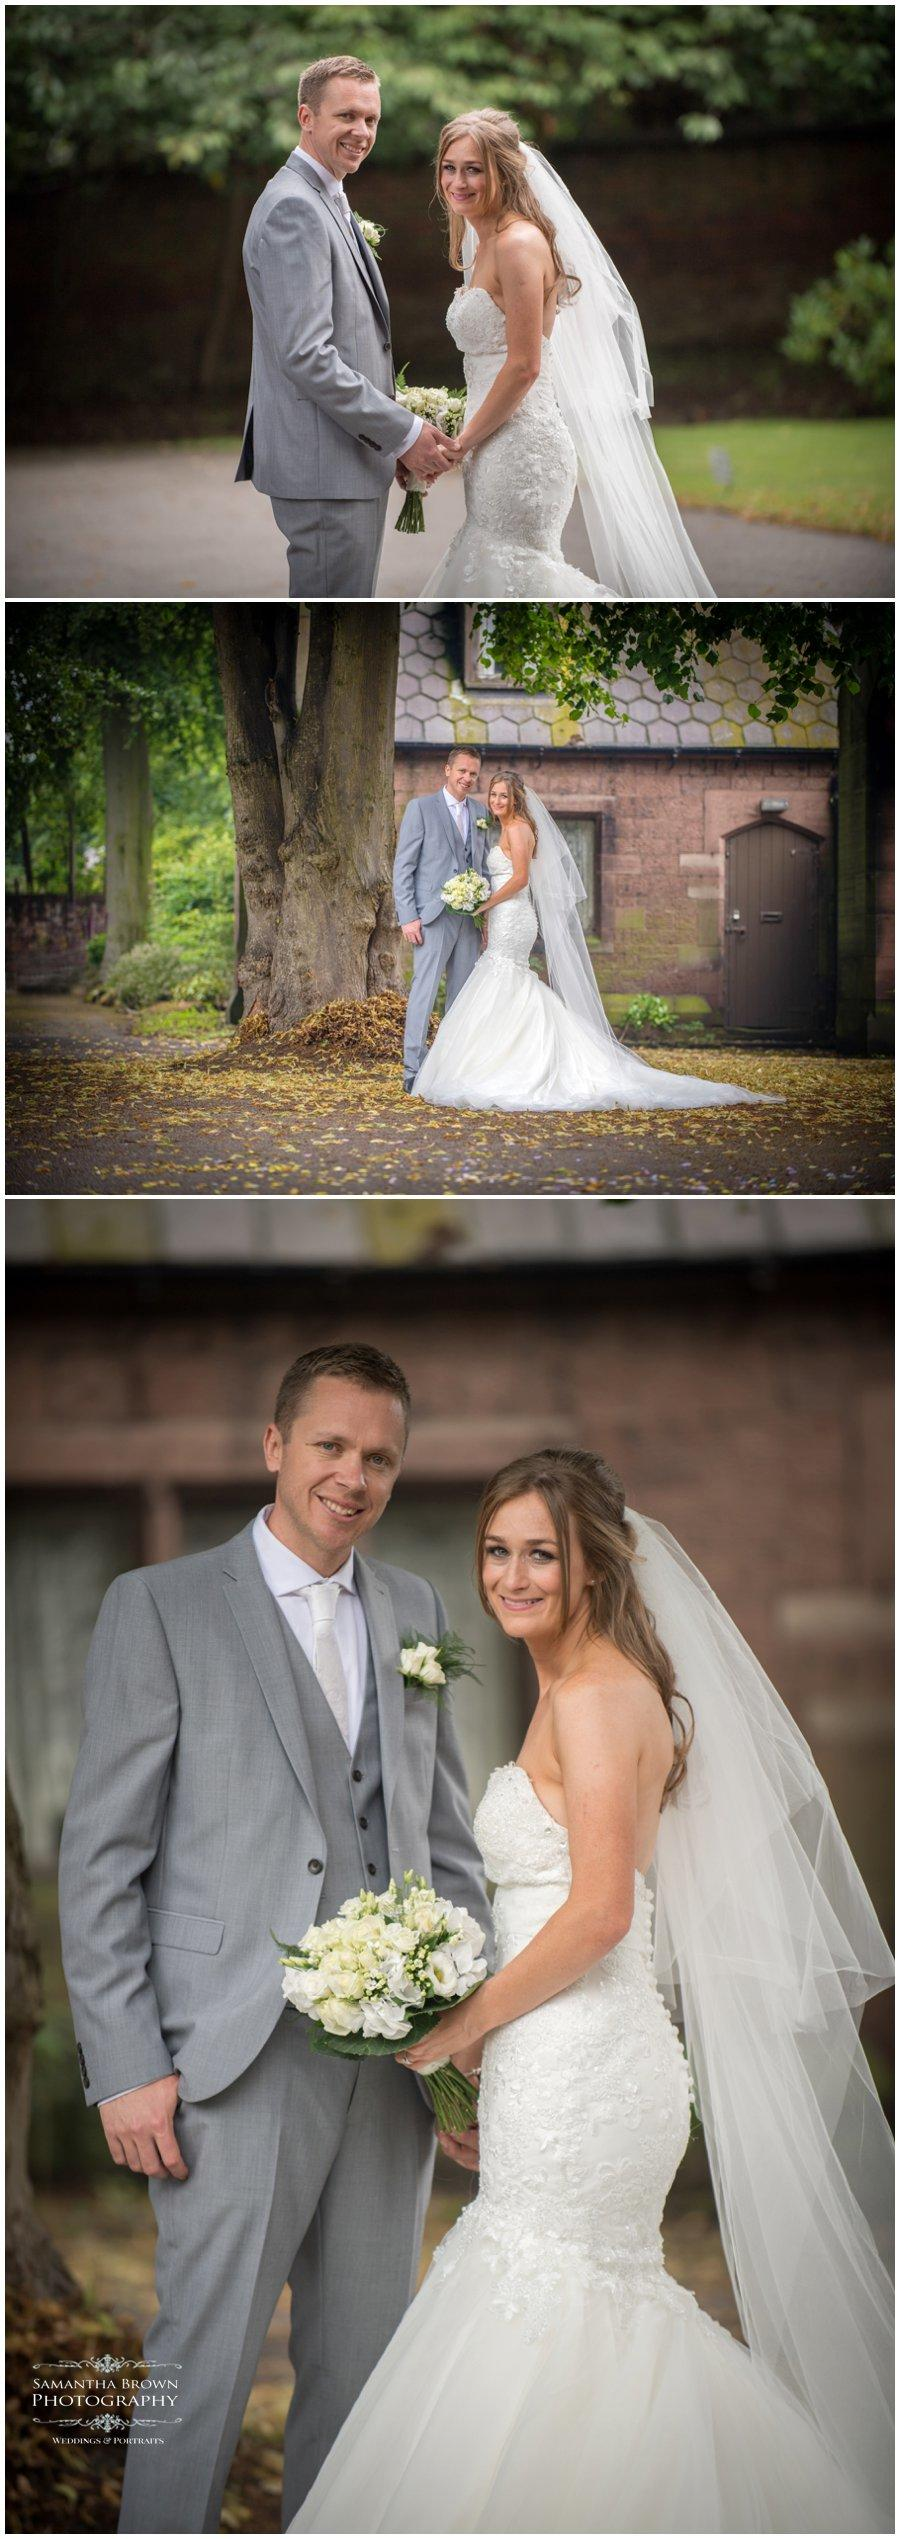 wedding-photography-liverpool-by-samantha-brown_0178